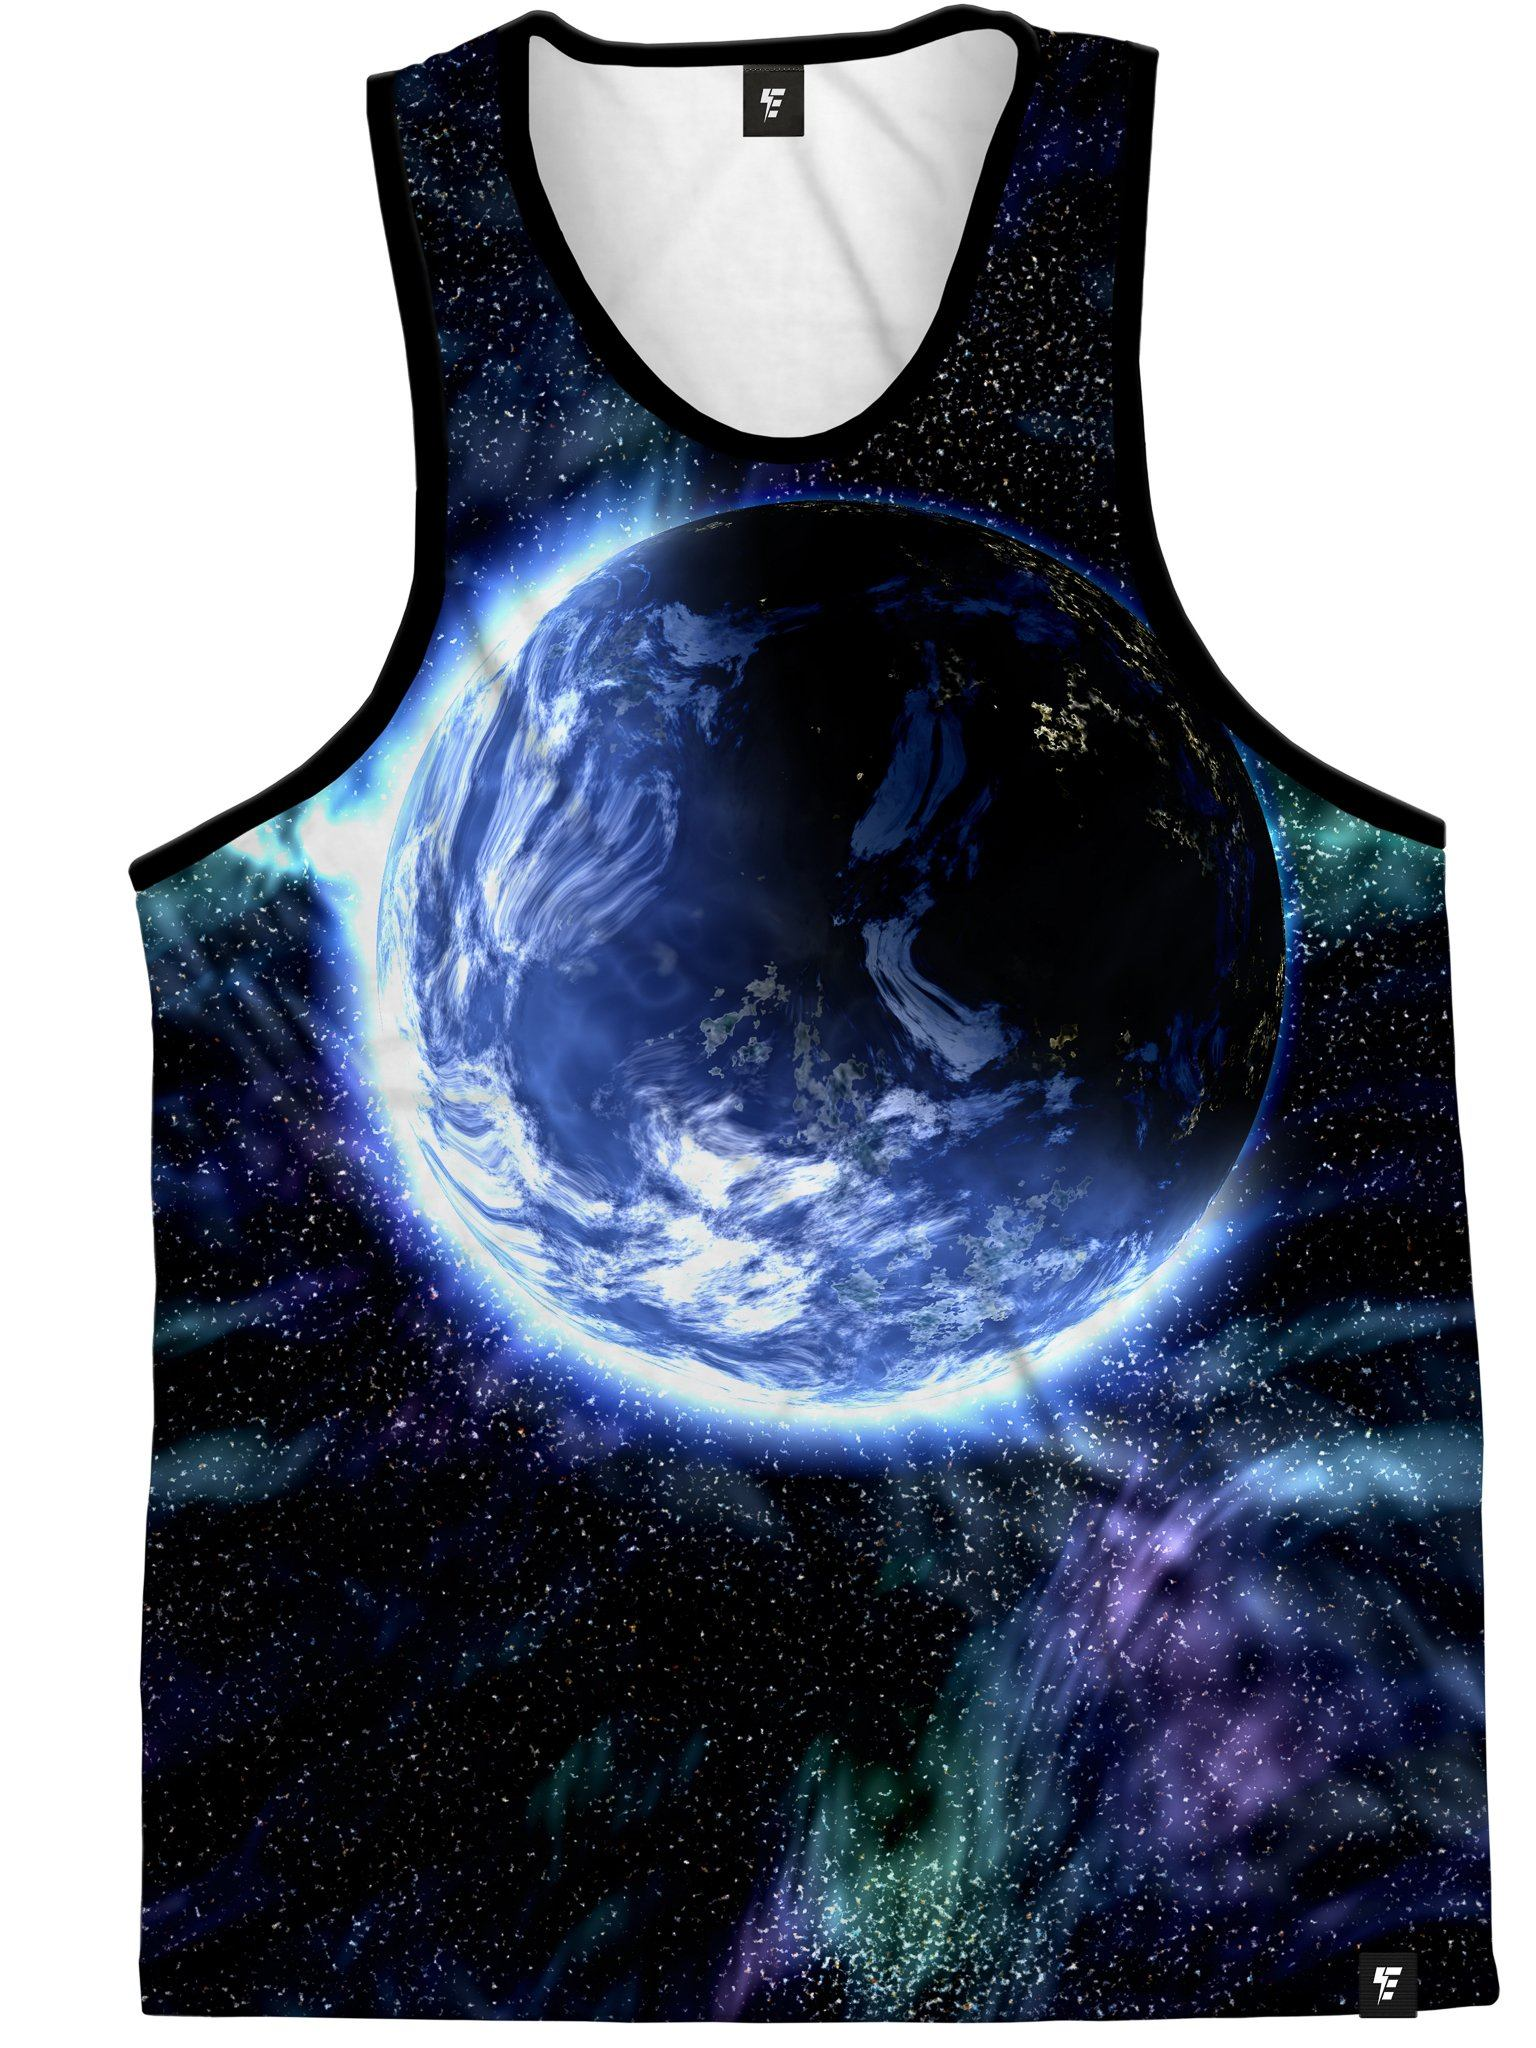 Night & Day Tank Top Tank Tops Electro Threads